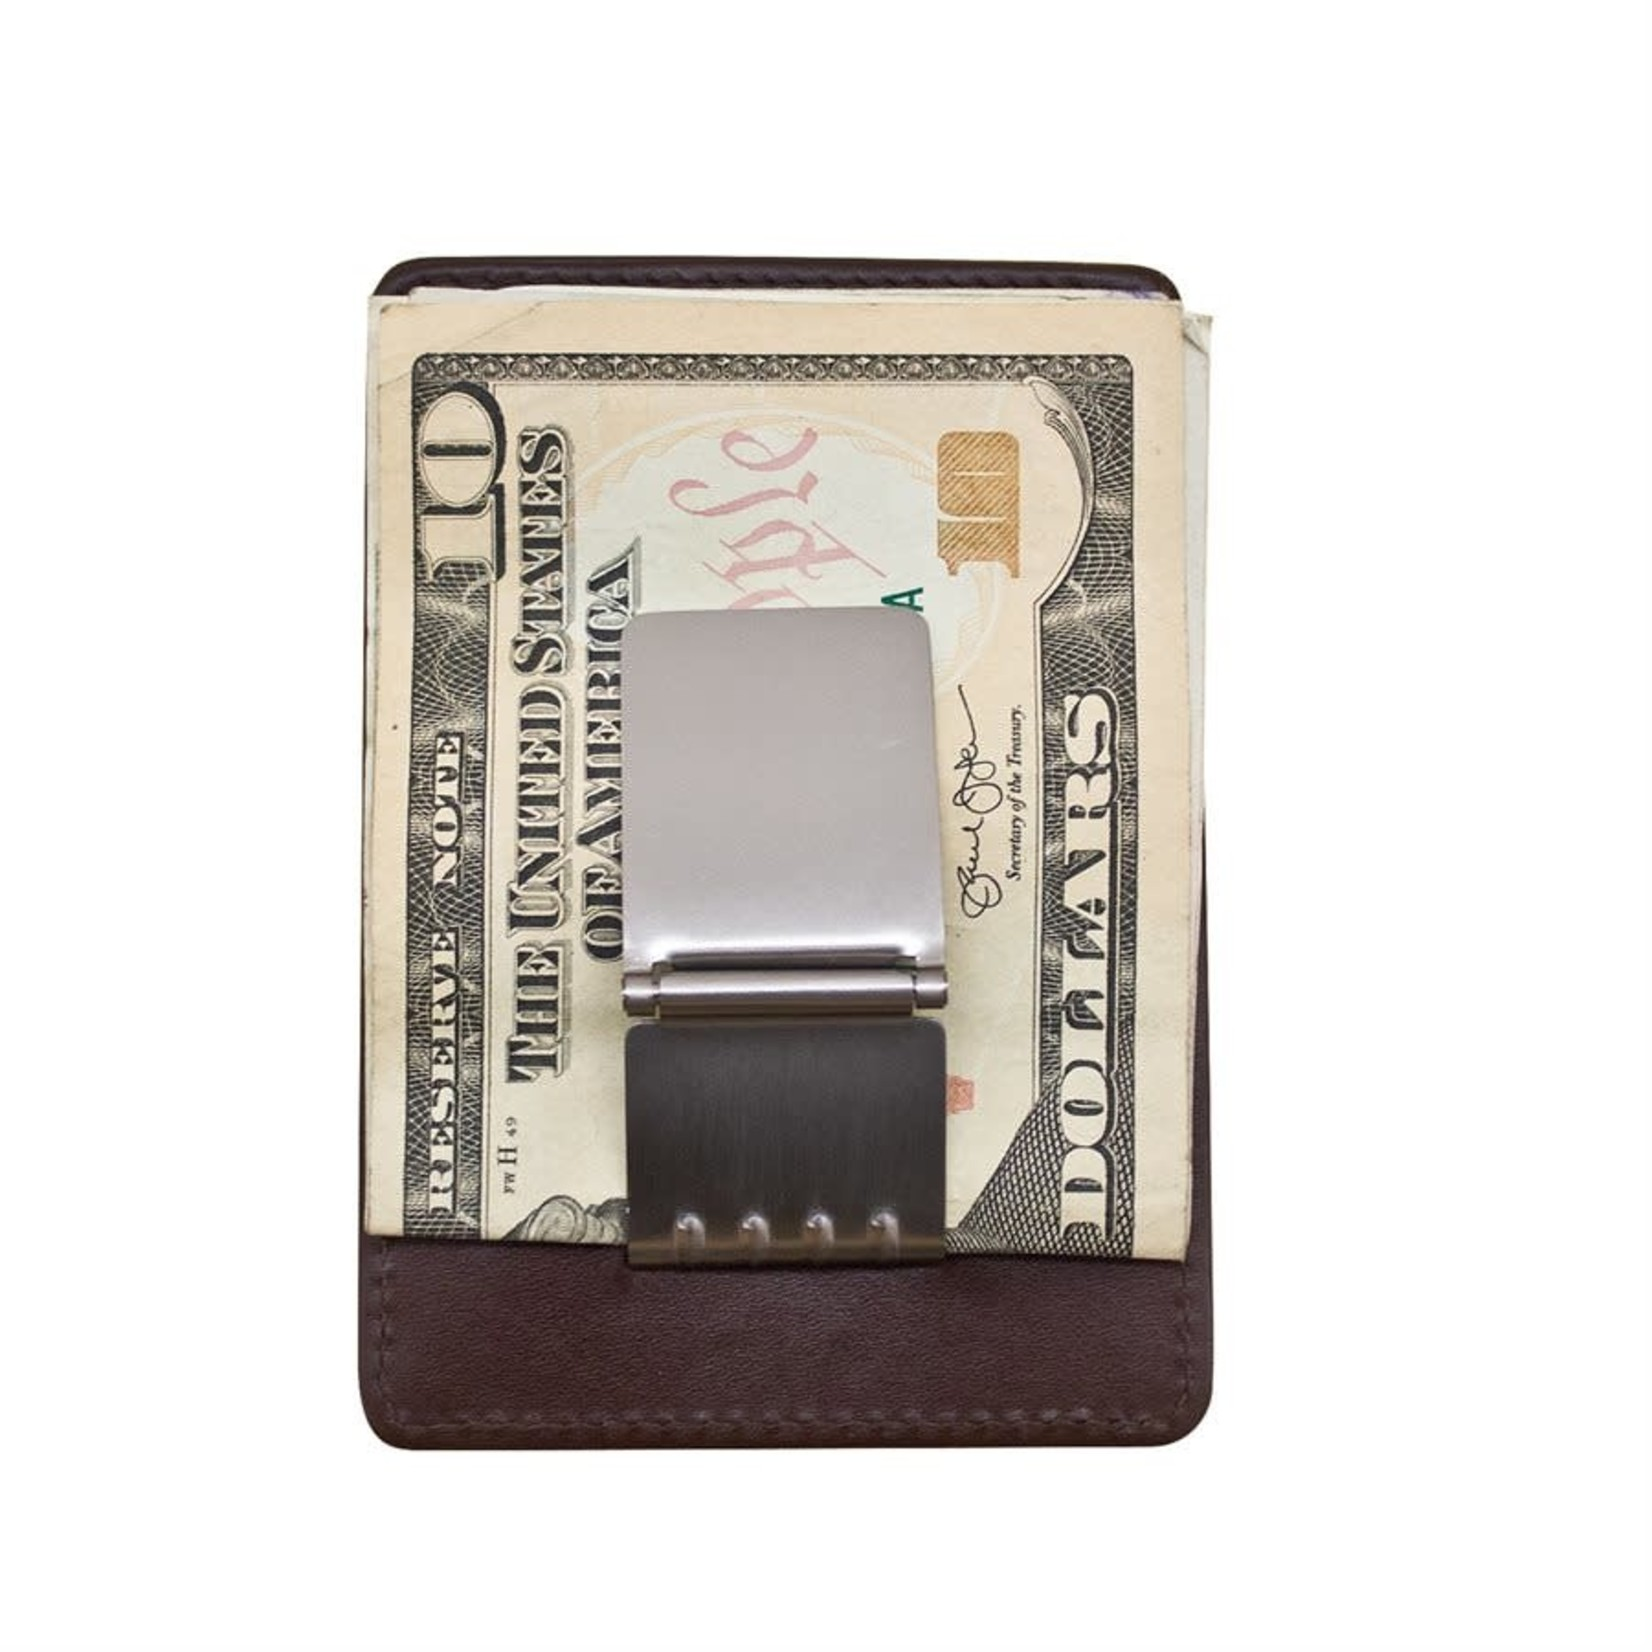 Leather Handbags and Accessories 7717 Brown - RFID Money Clip Card Holder